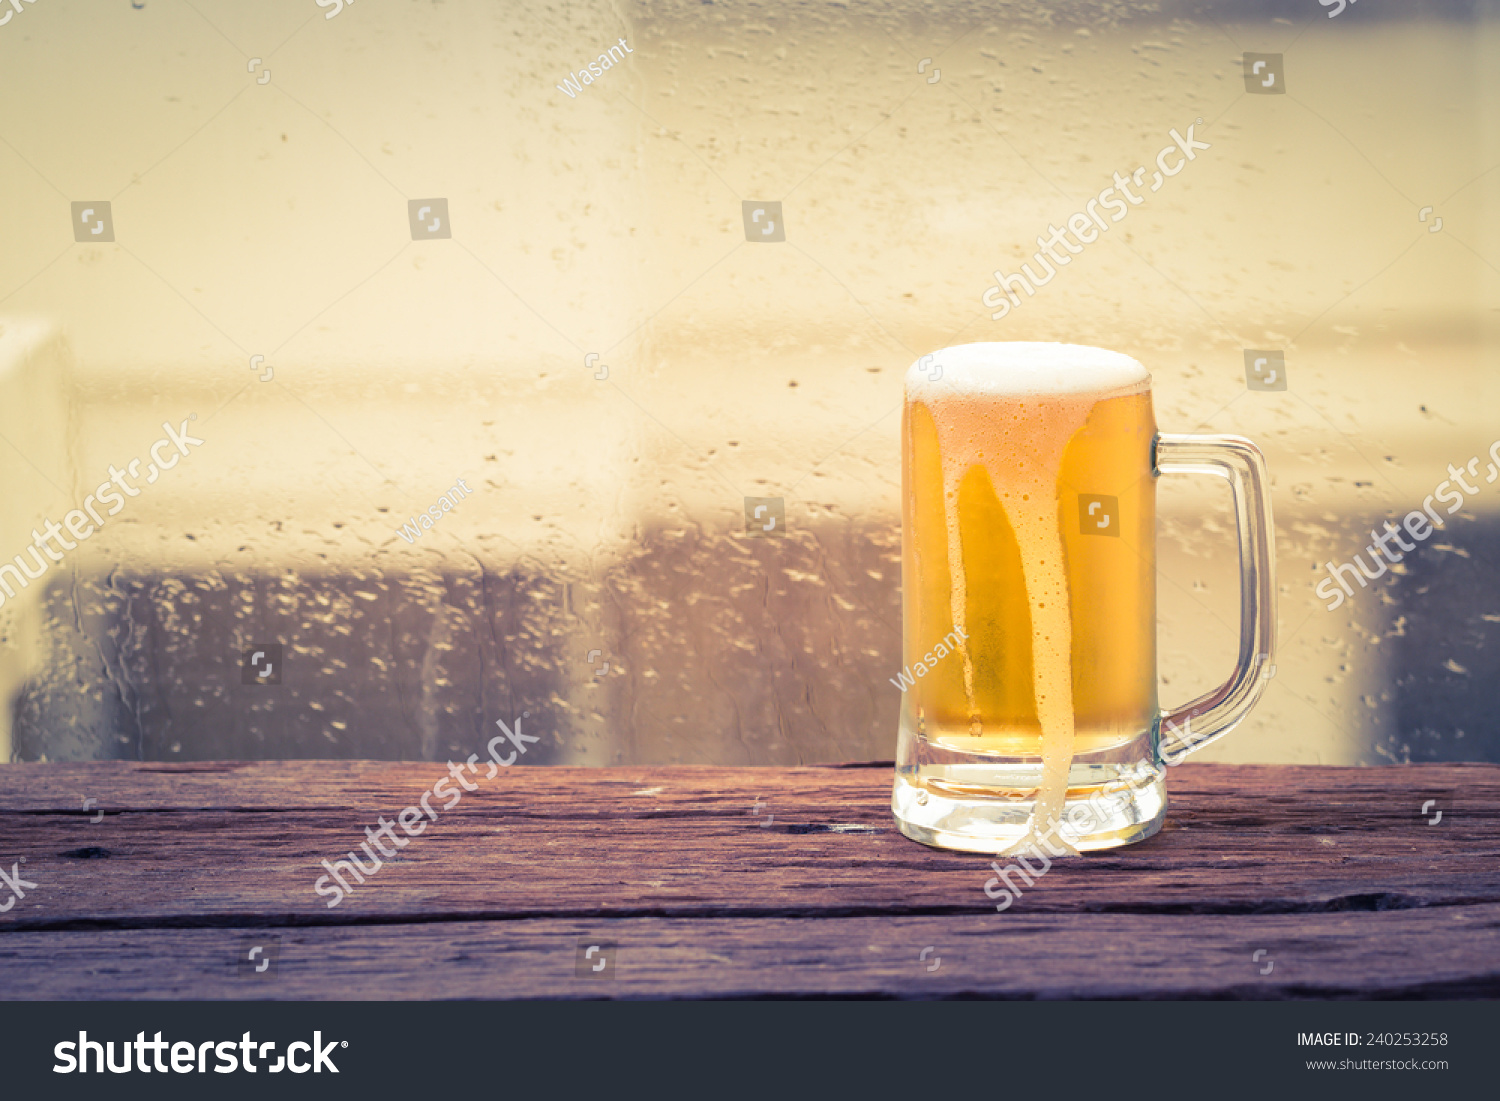 glass beer on wood - photo #9